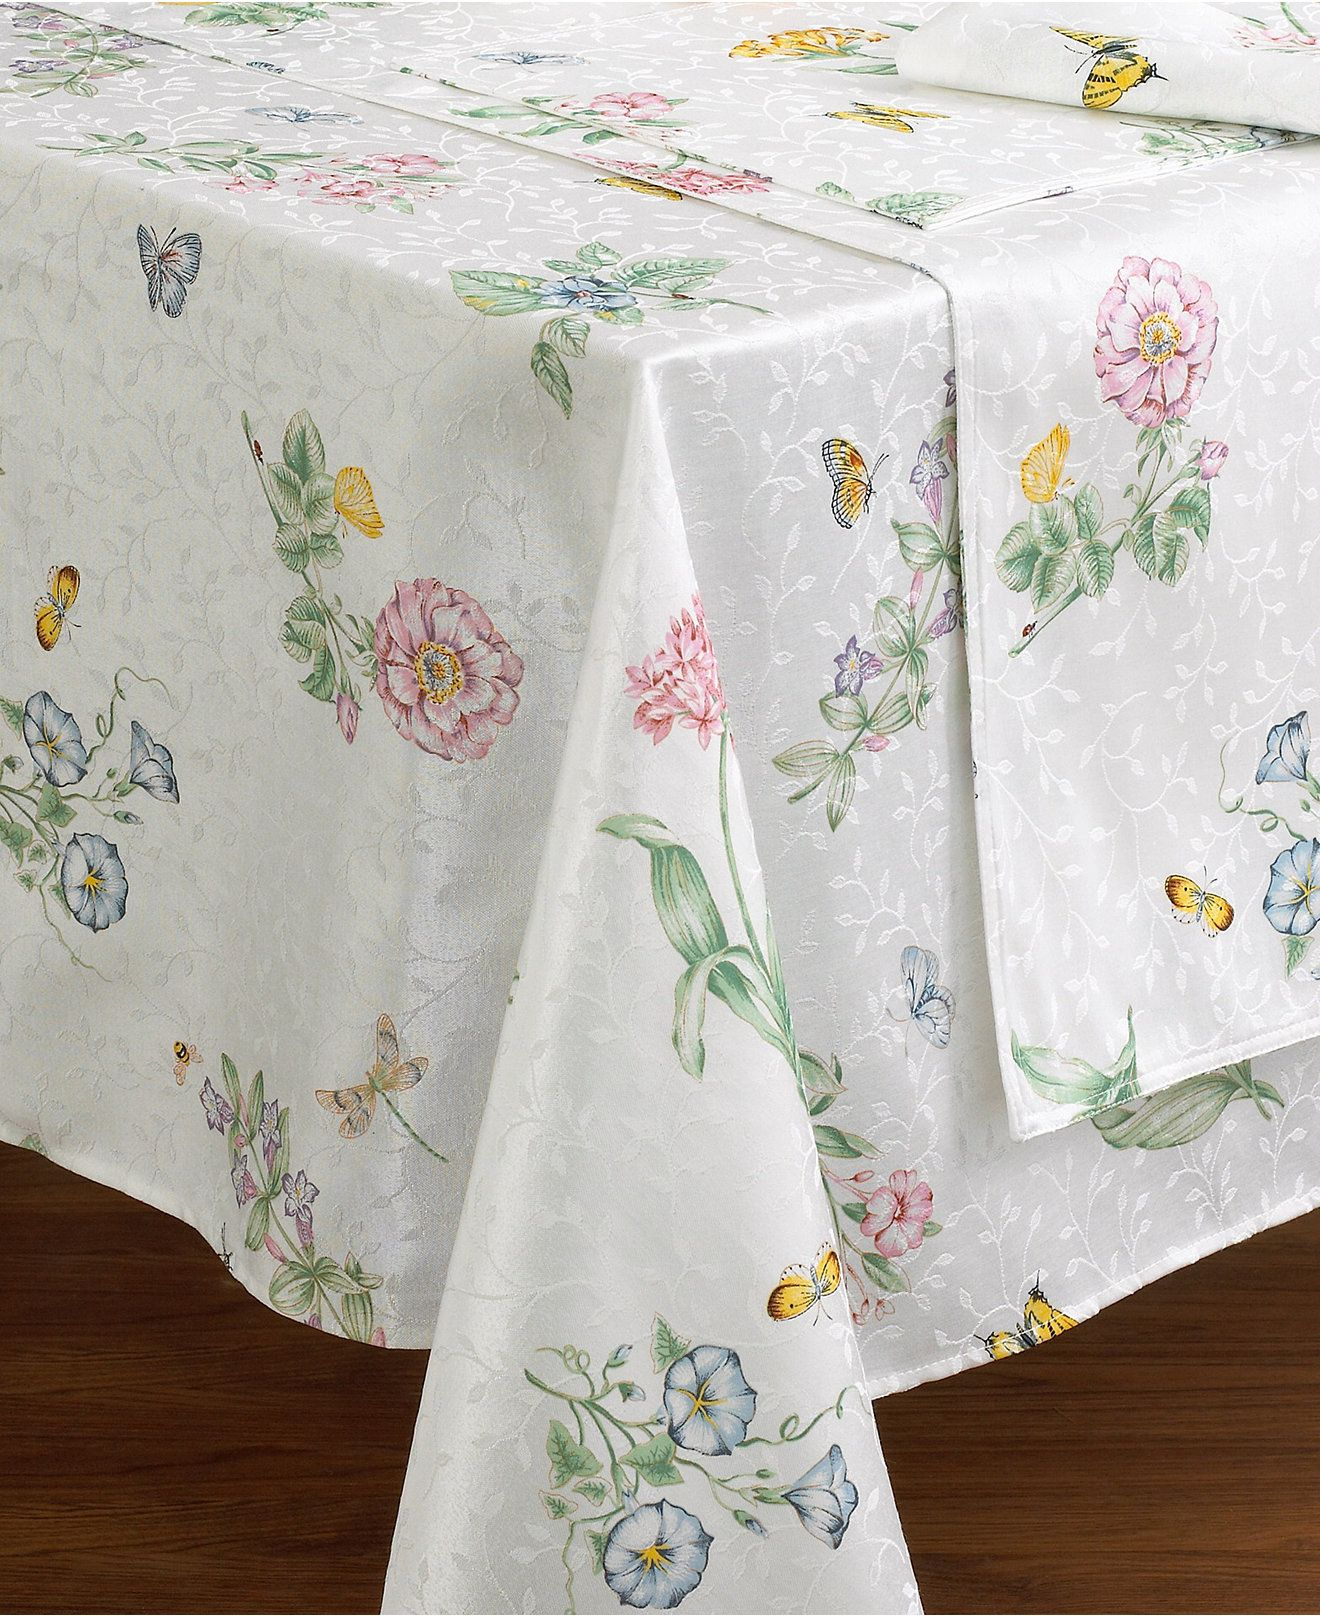 Tuscan Table Cloths Google Search 이미지 포함